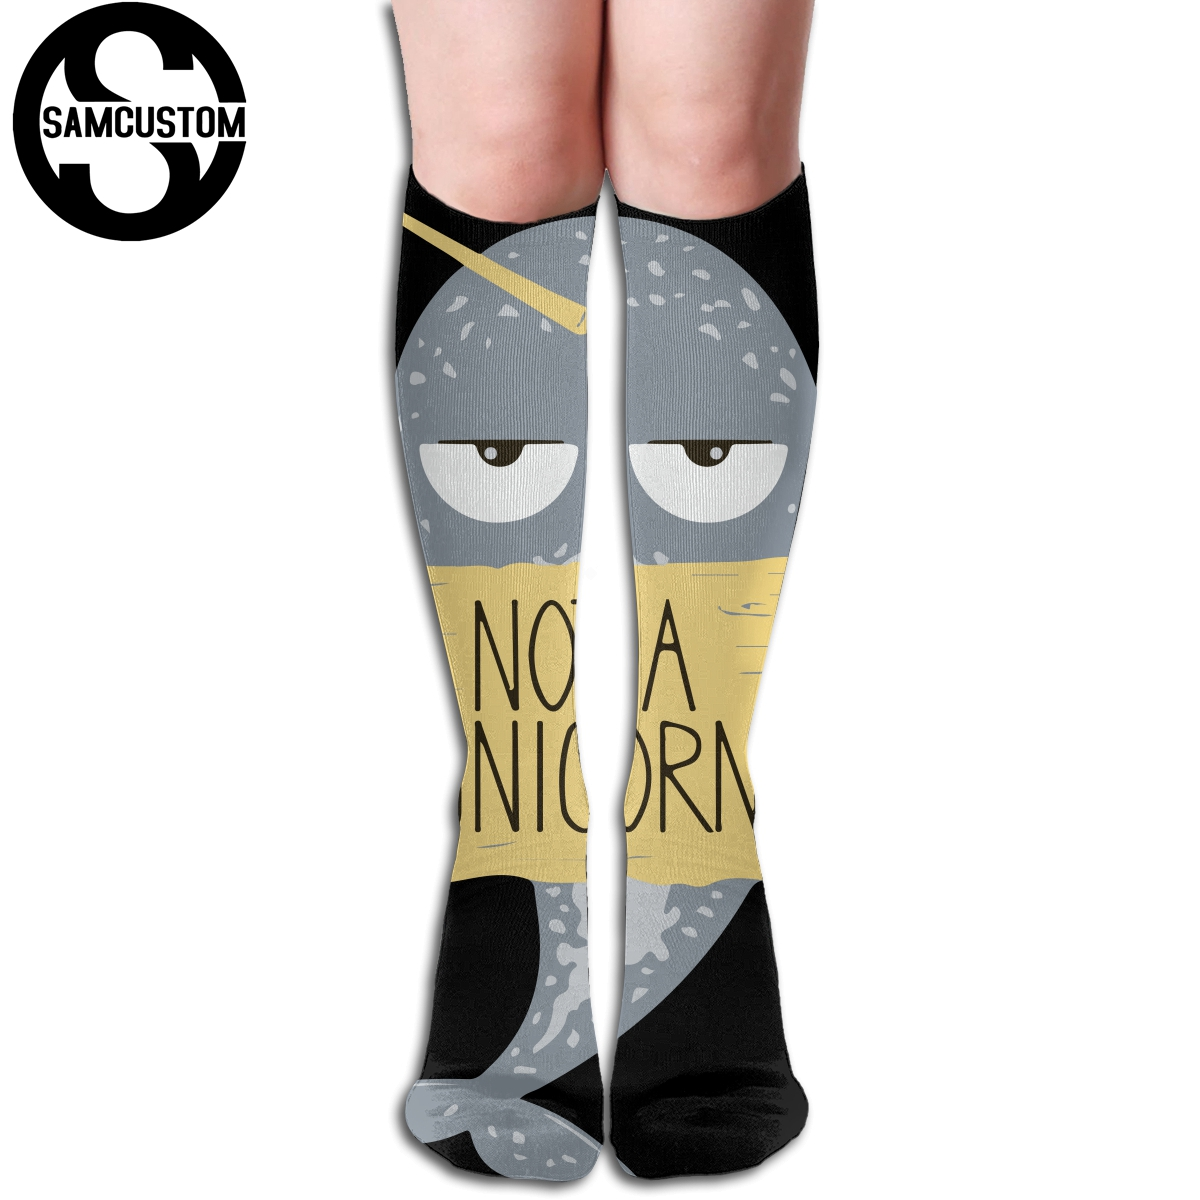 I Am Narwhal 3d Printing Female Kawaii Knee Socks Fashion Girl Cute Stockings Stockings Systematic Samcustom Personalized Custom I Am Not A Unicorn